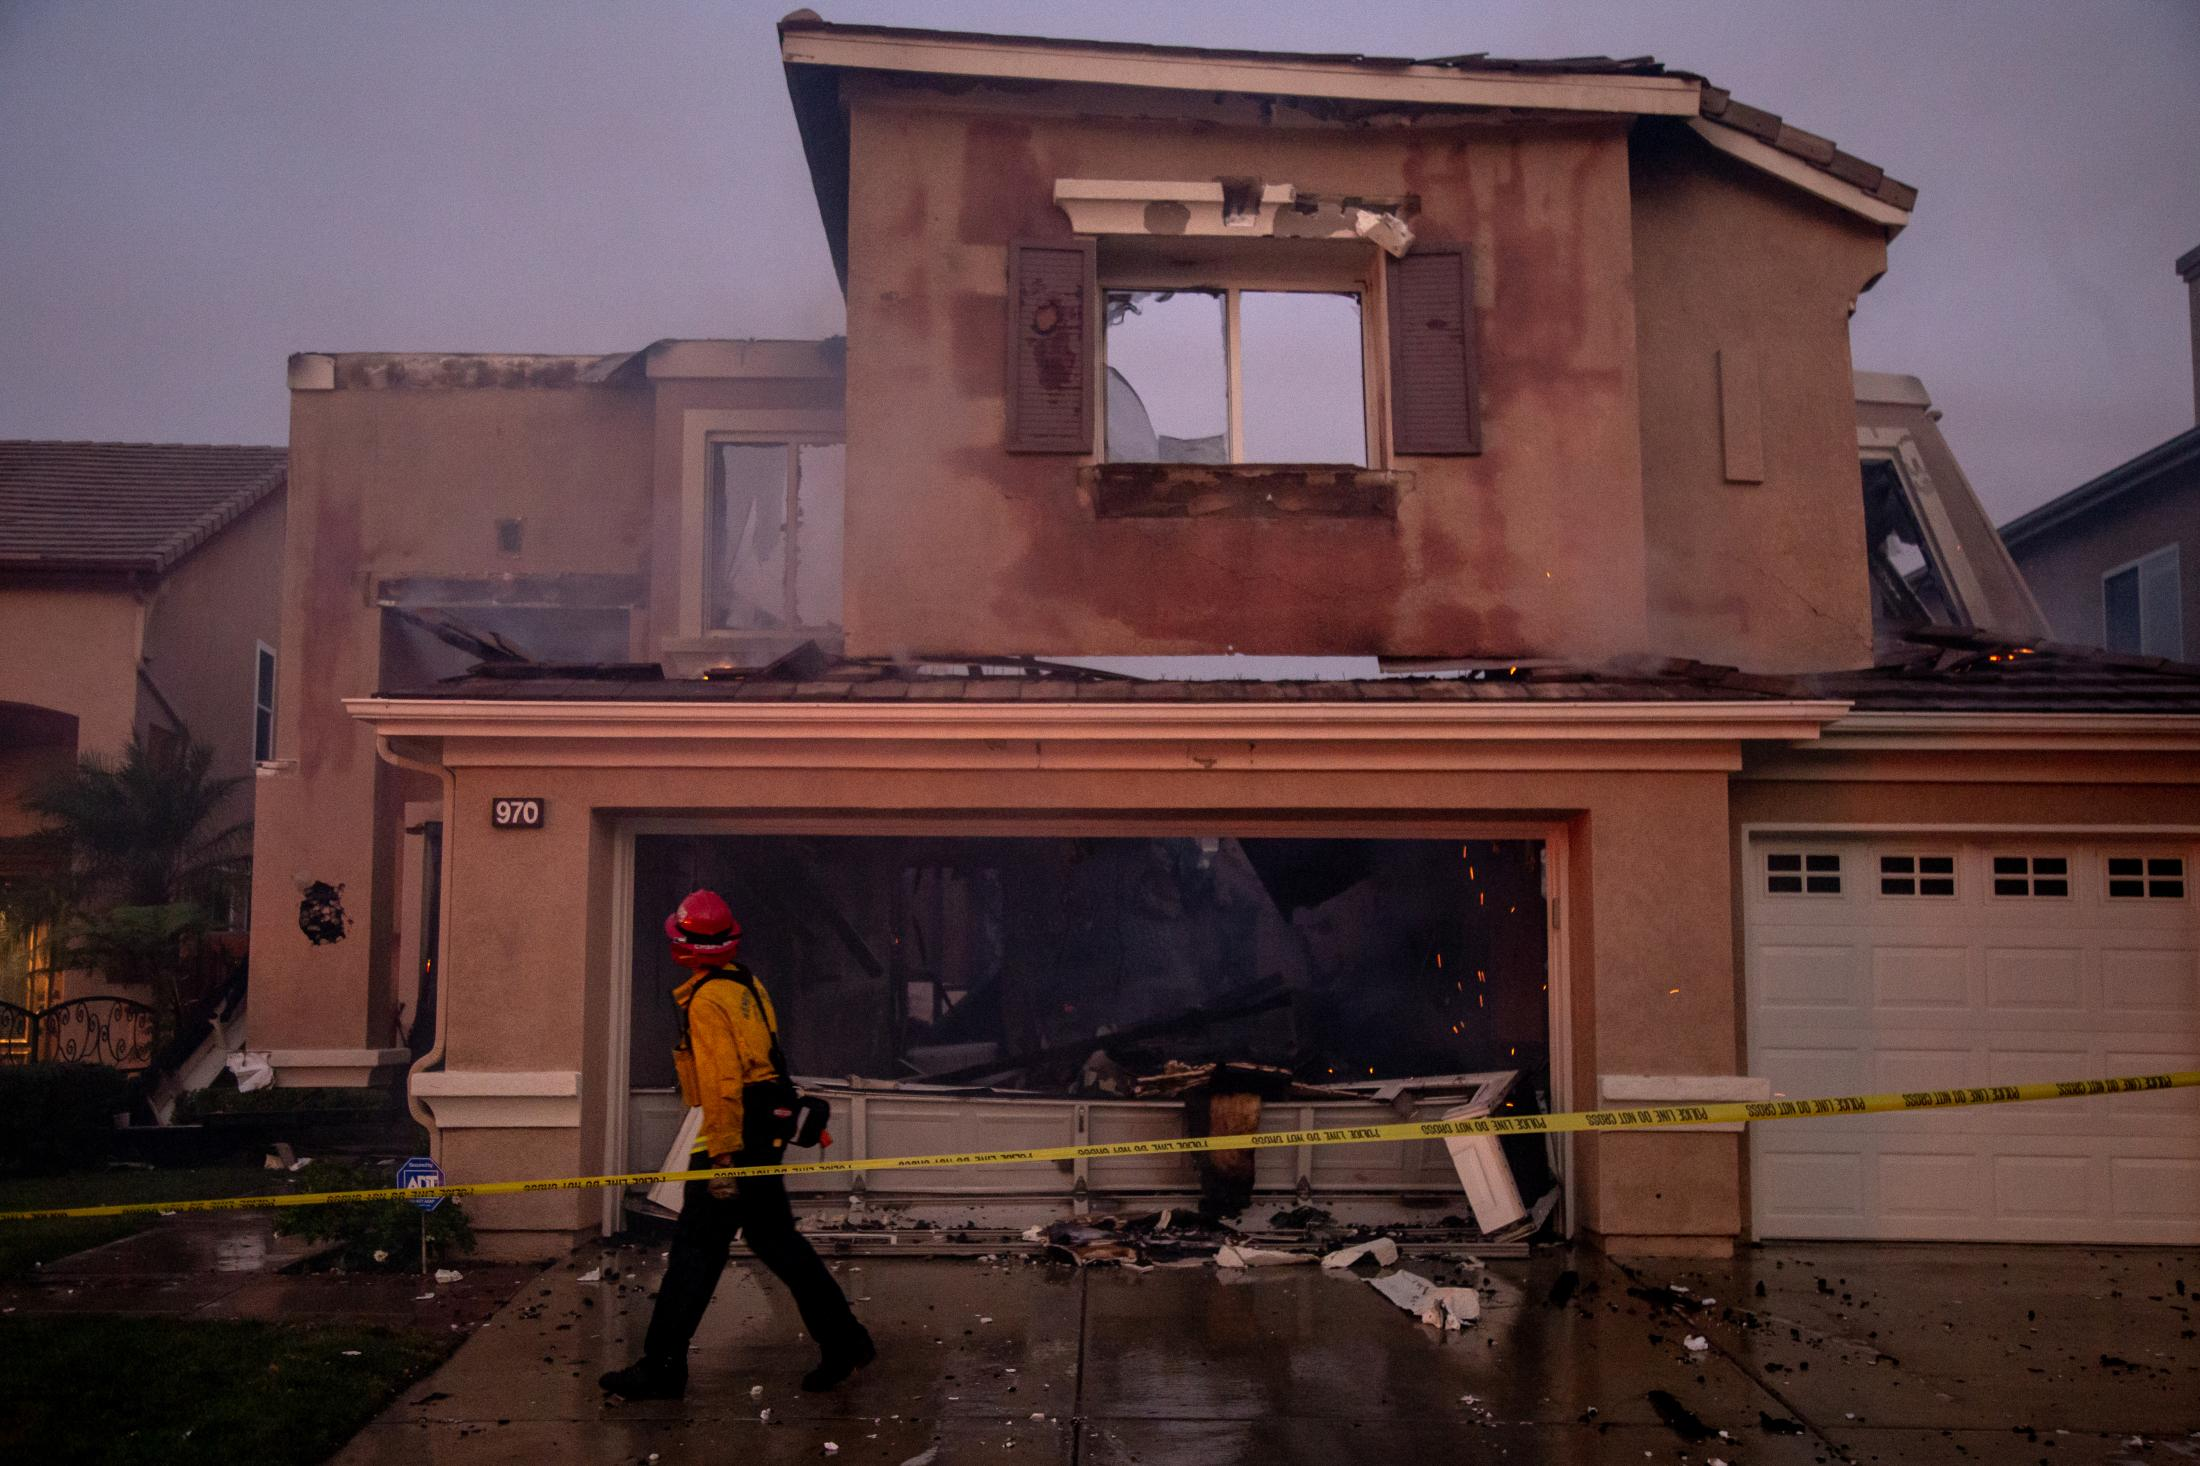 A building is left destroyed after a wildfire spreads through a community. Firefighters tape off any structures that could be dangerous.